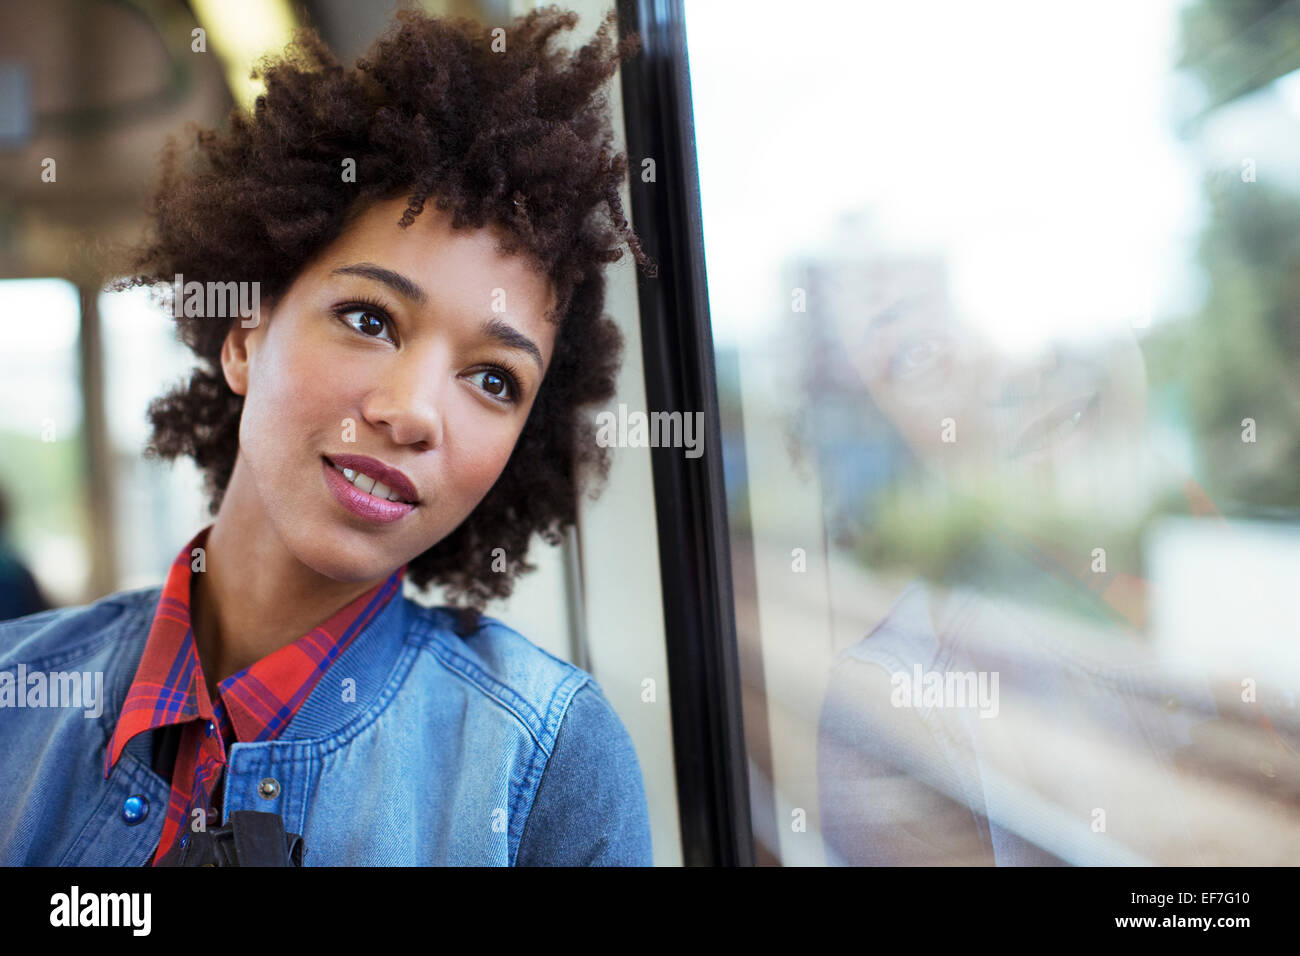 Daydreaming woman looking out train window - Stock Image